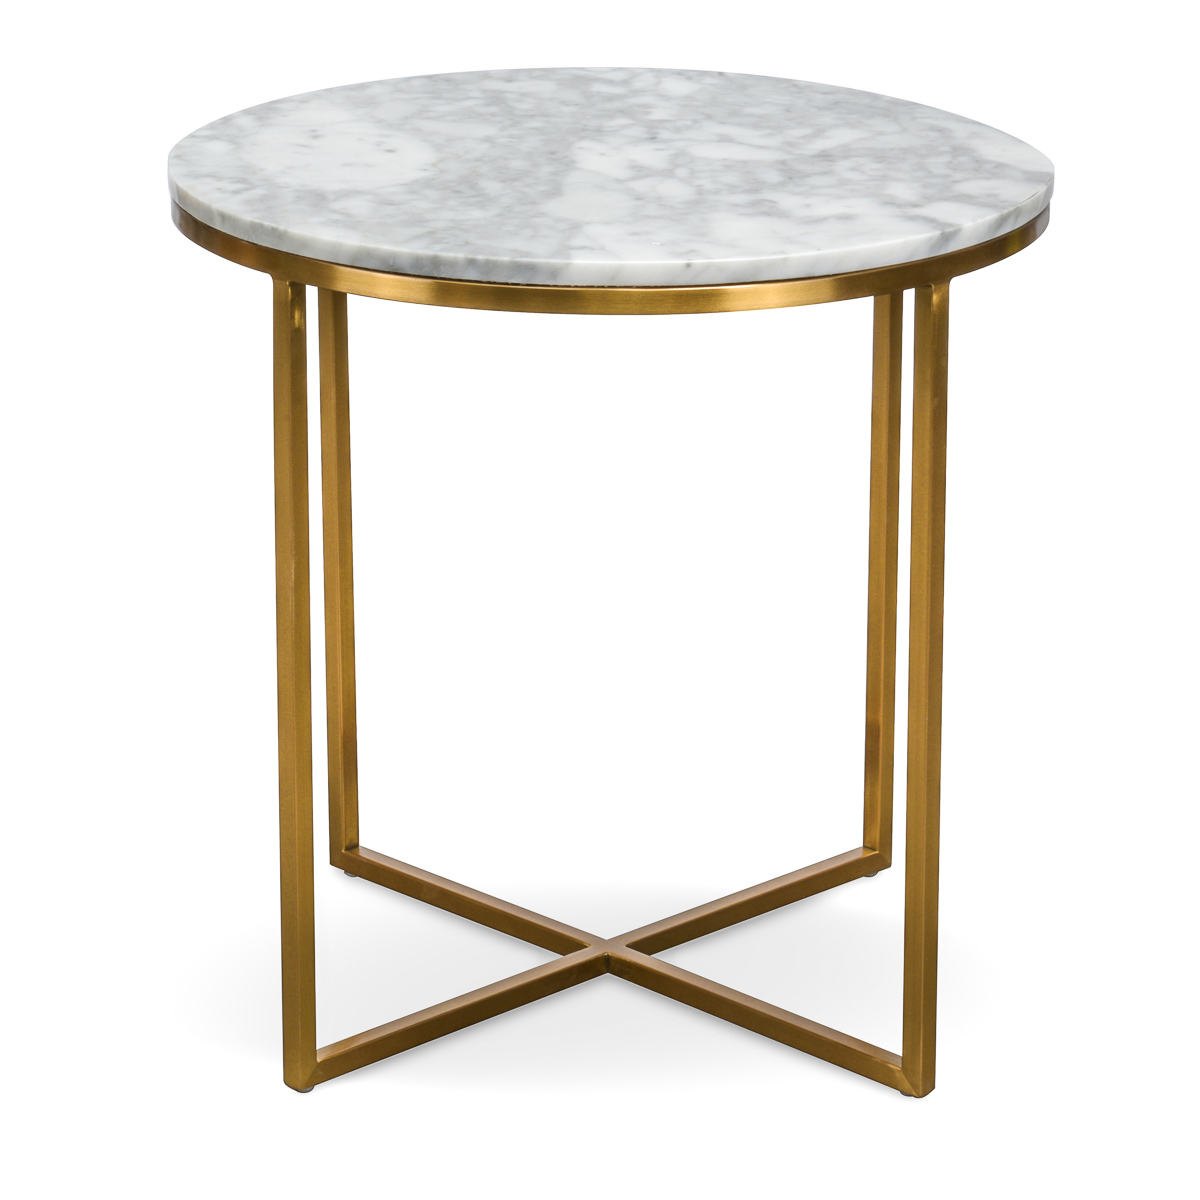 marble target black side table turesboss round glass bedside sevenstonesinc lorenz wood decorator end small square pedestal ideas interior secrets metal dining tables night stands